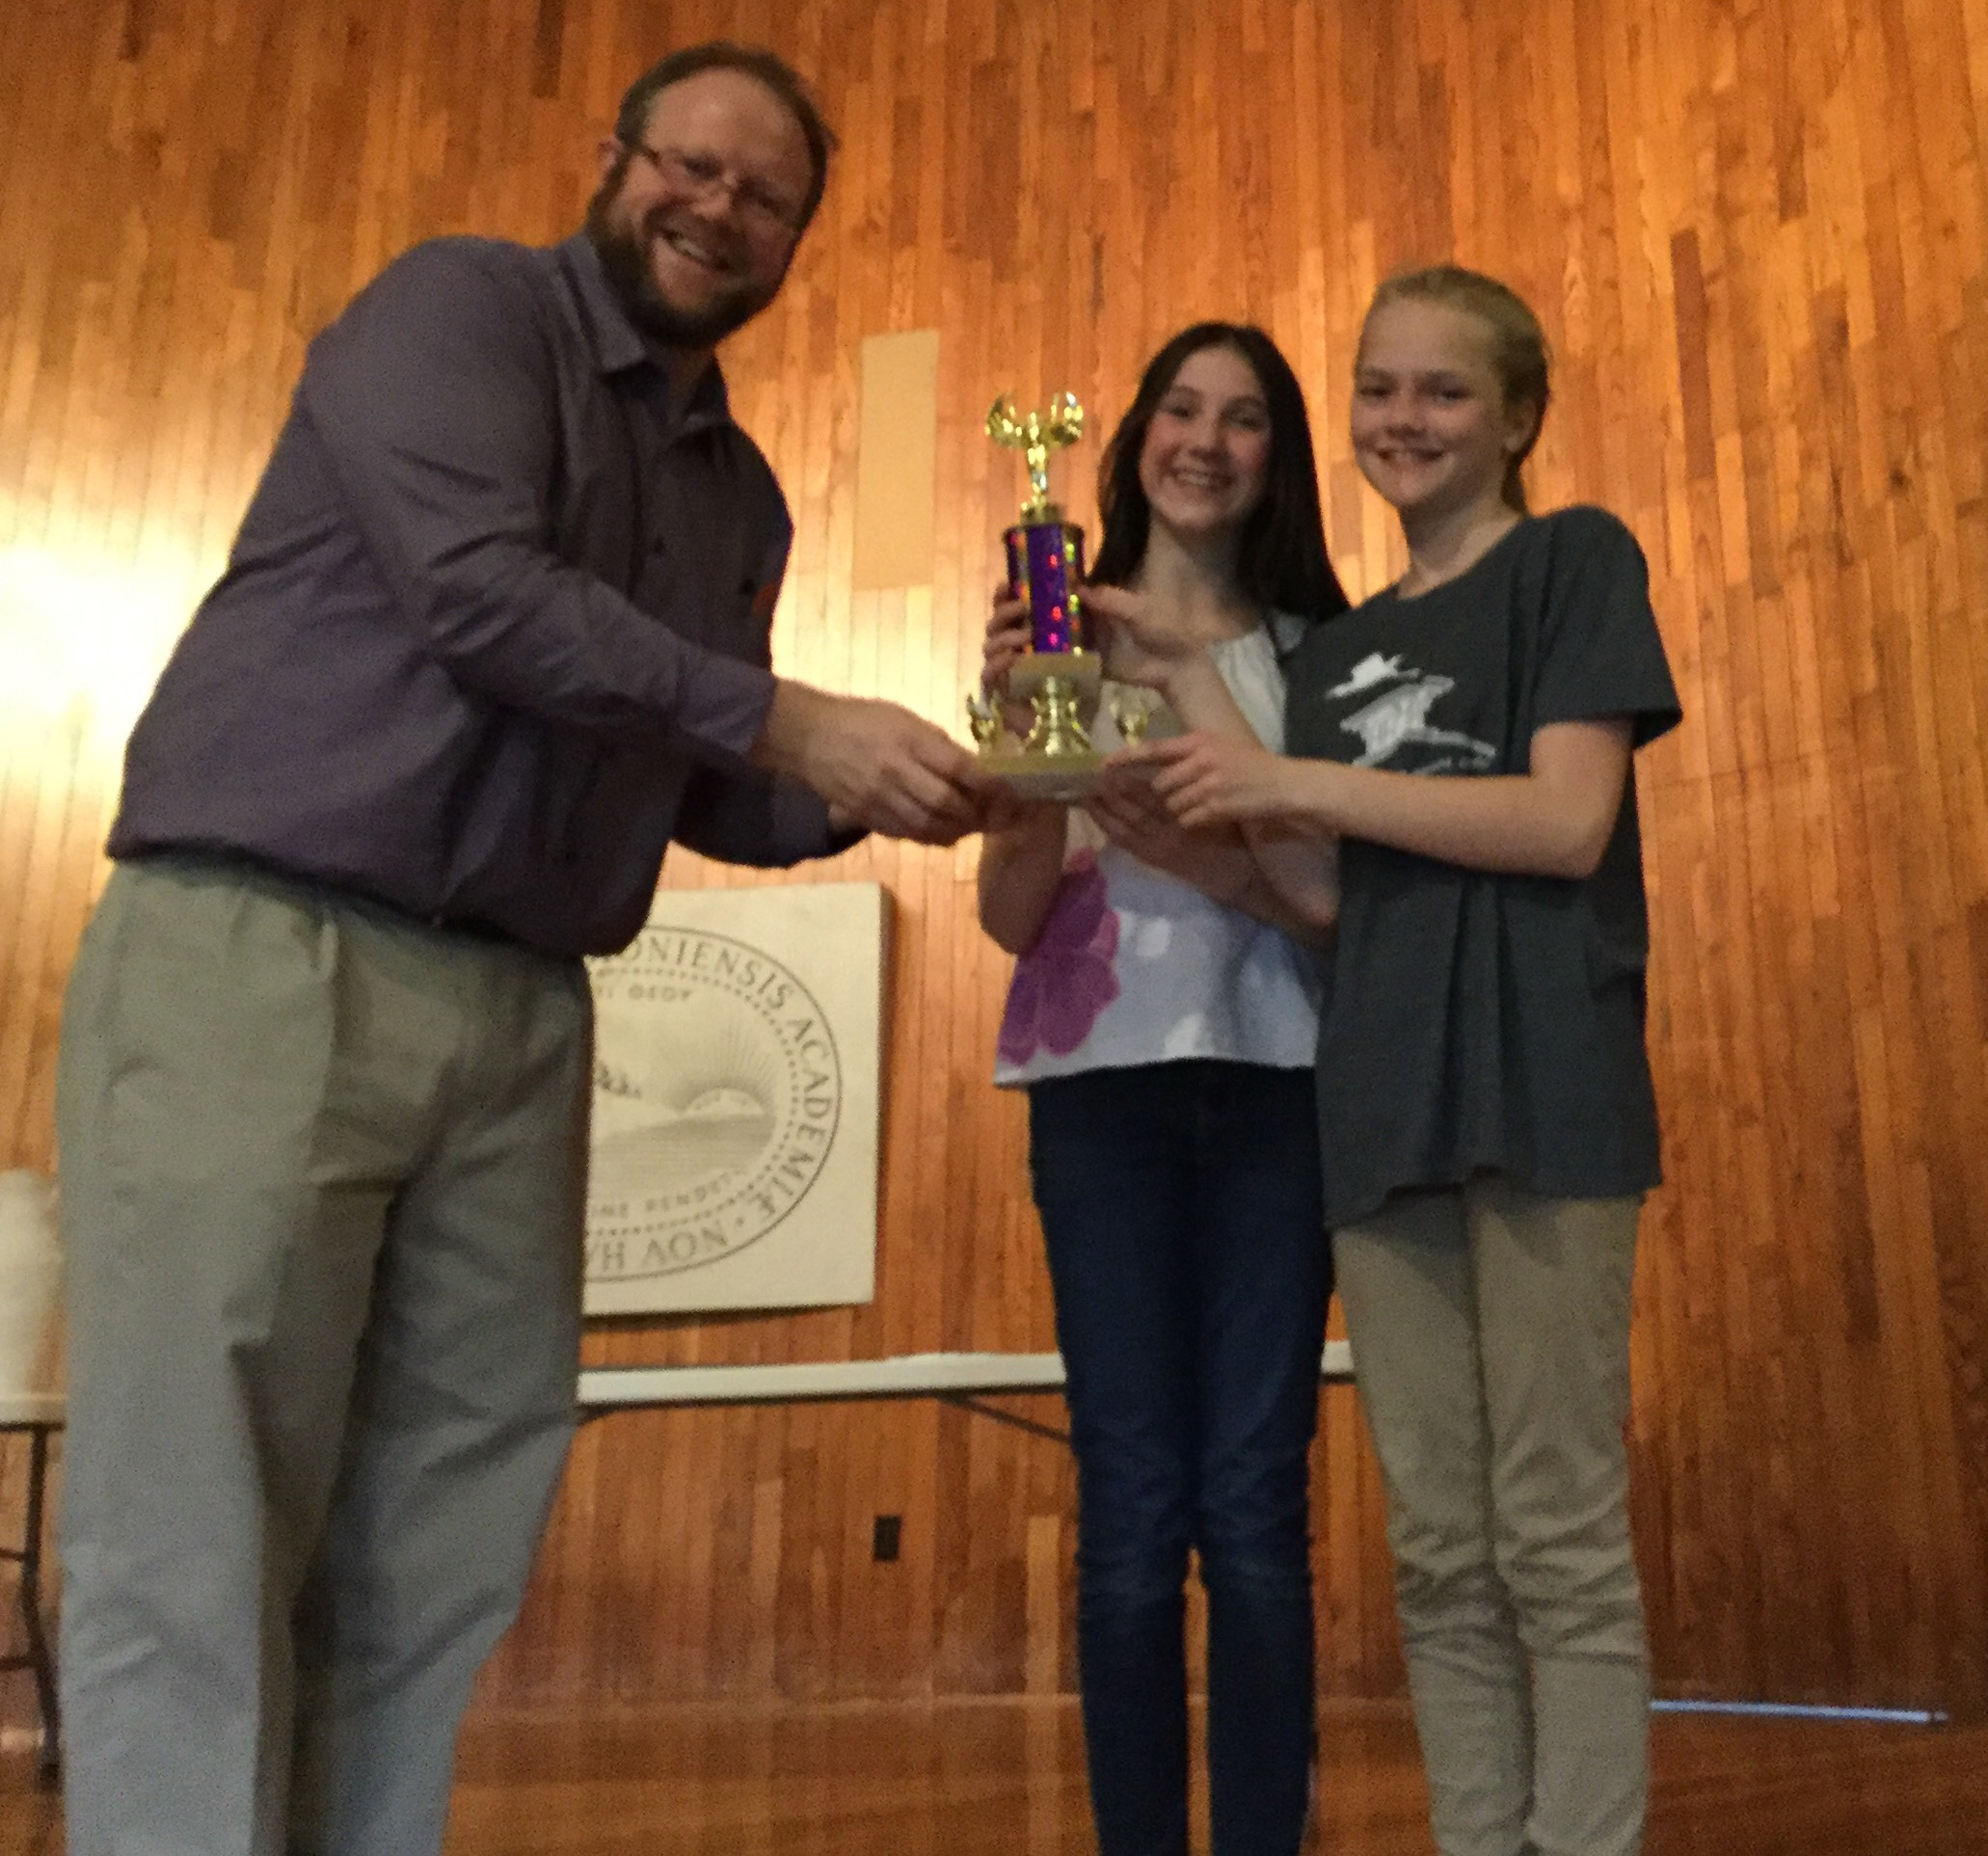 Katie Lyon from Waterford and Phoebe Barrett from Westmore receive a trophy for their win in the novice Certamen competition.